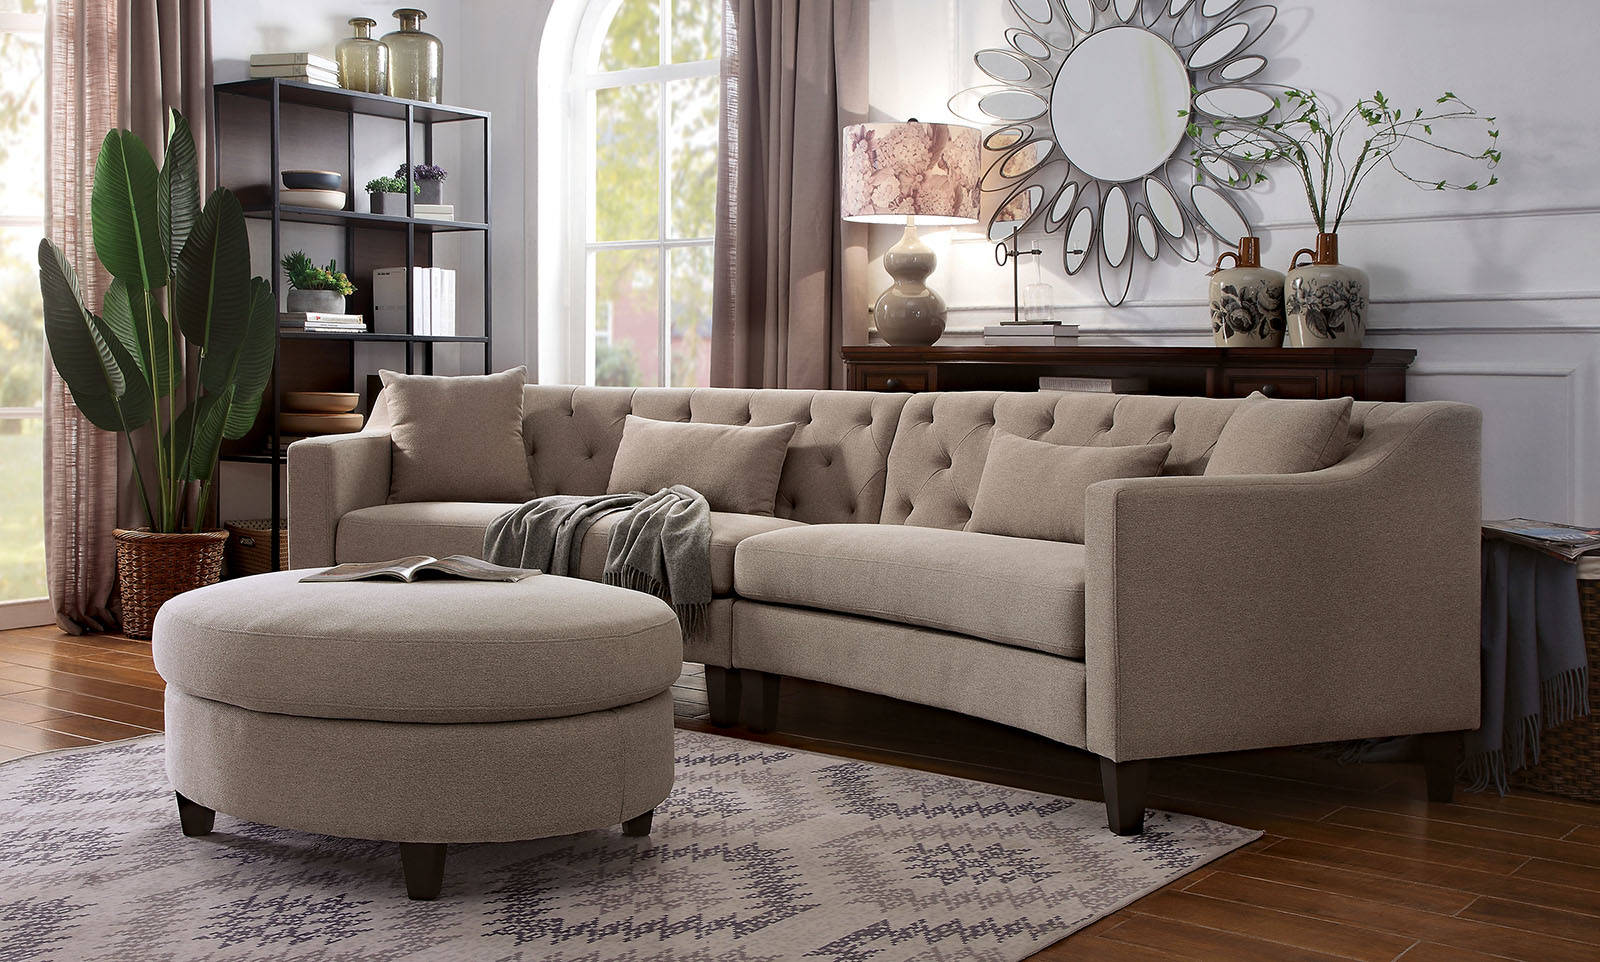 Stupendous Furniture Of America Sarin Taupe Sectional With Ottoman Onthecornerstone Fun Painted Chair Ideas Images Onthecornerstoneorg